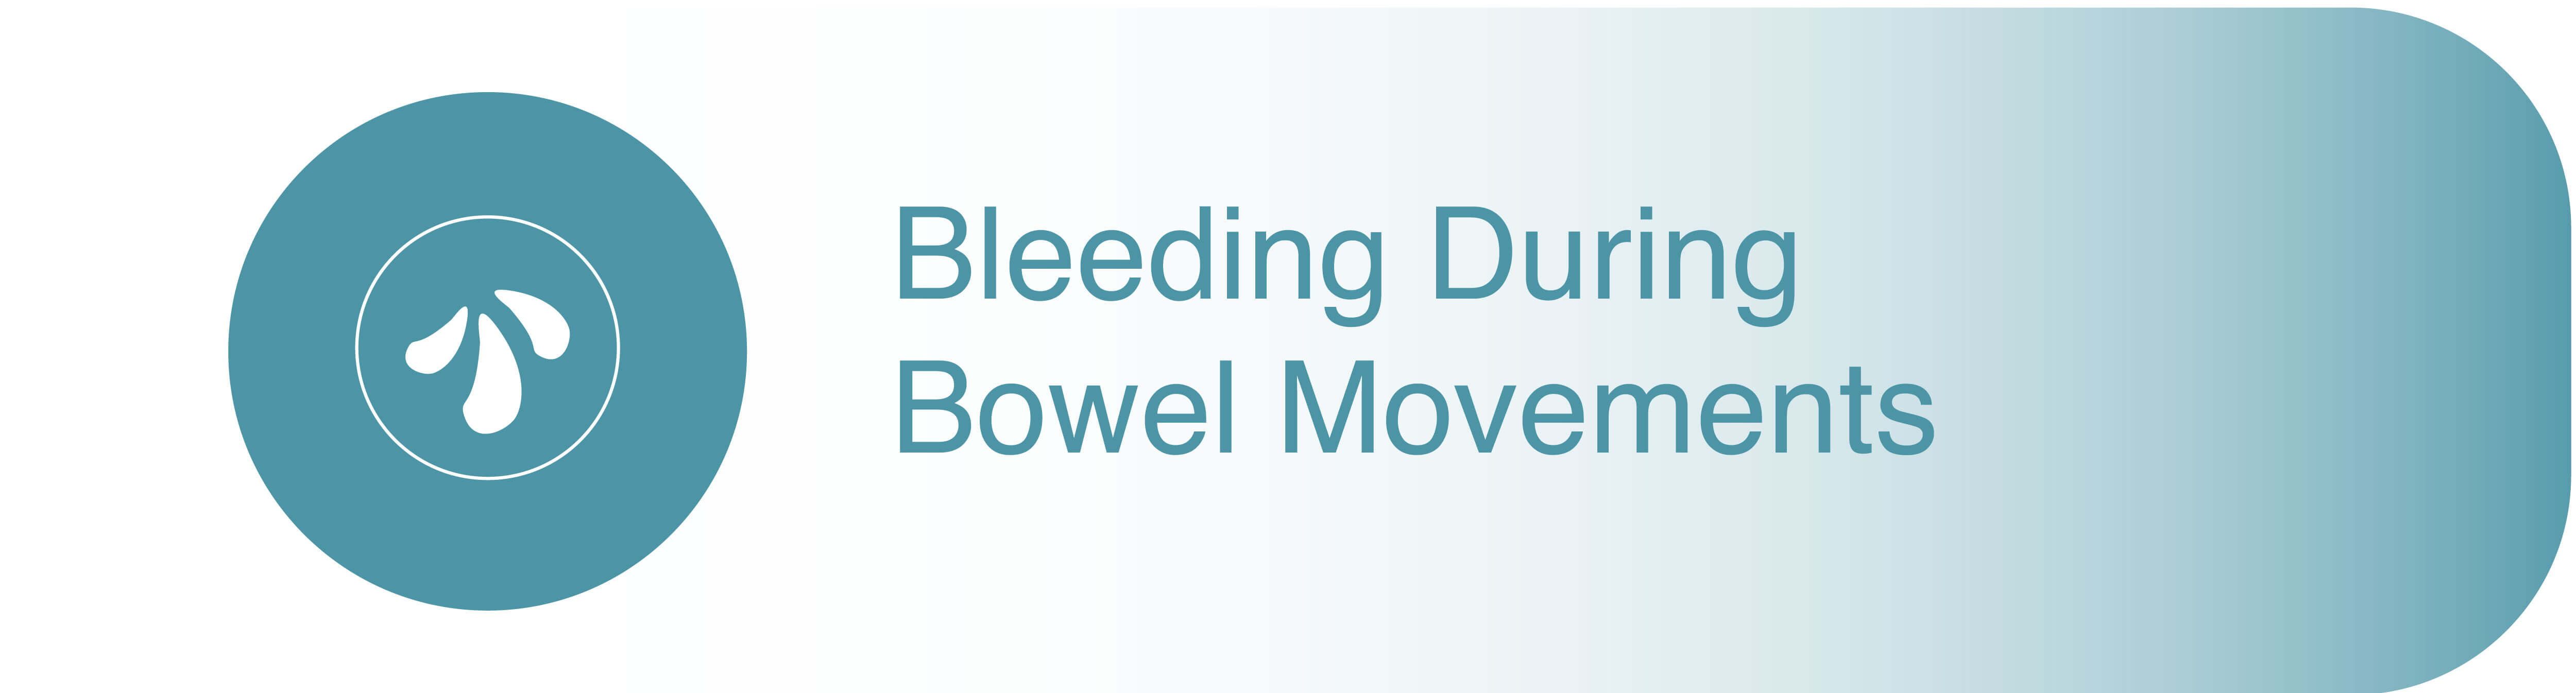 Bleeding during bowel movements in piles